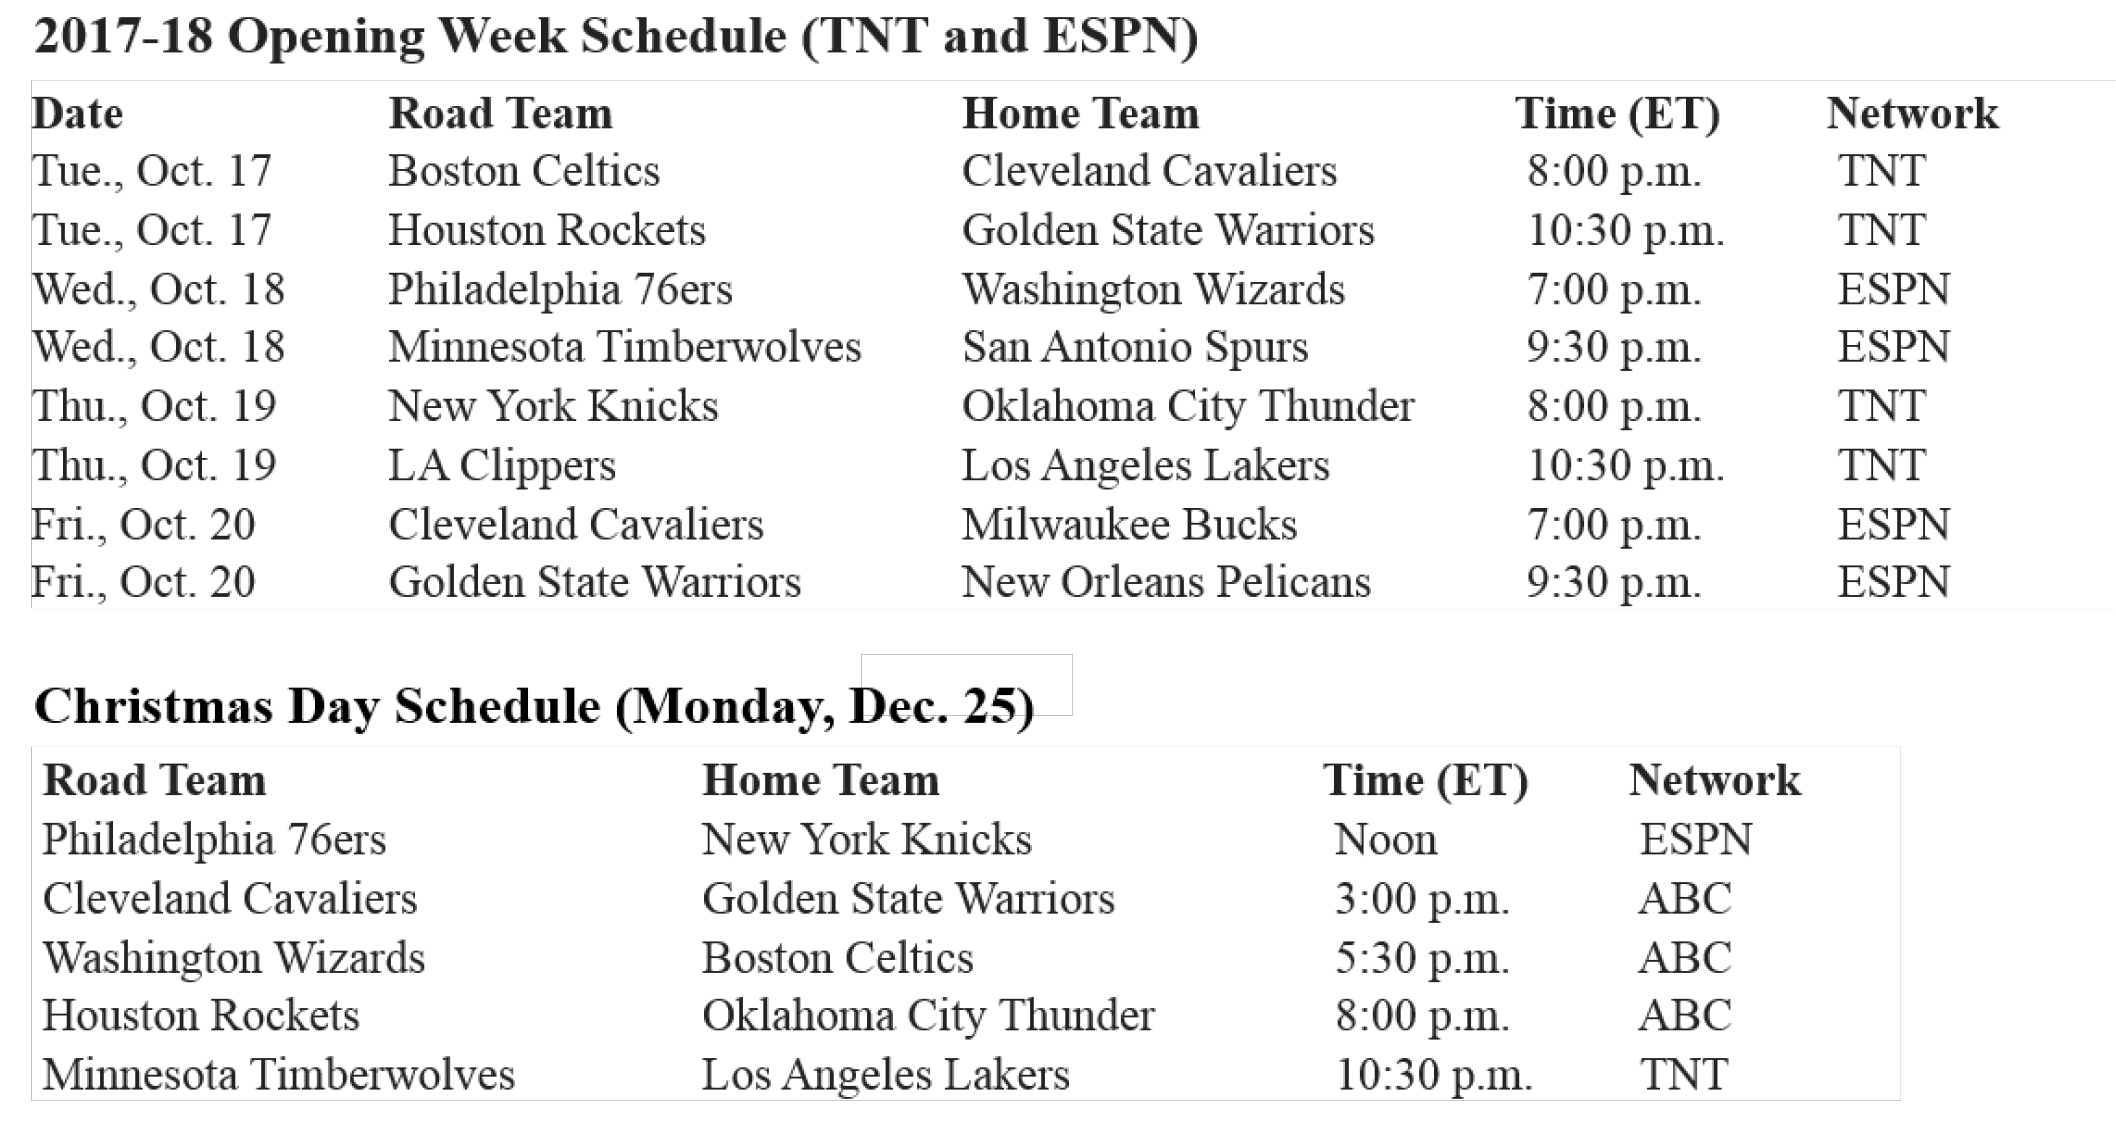 NBA Unveils National TV Schedule For 2017 18 Opening Week